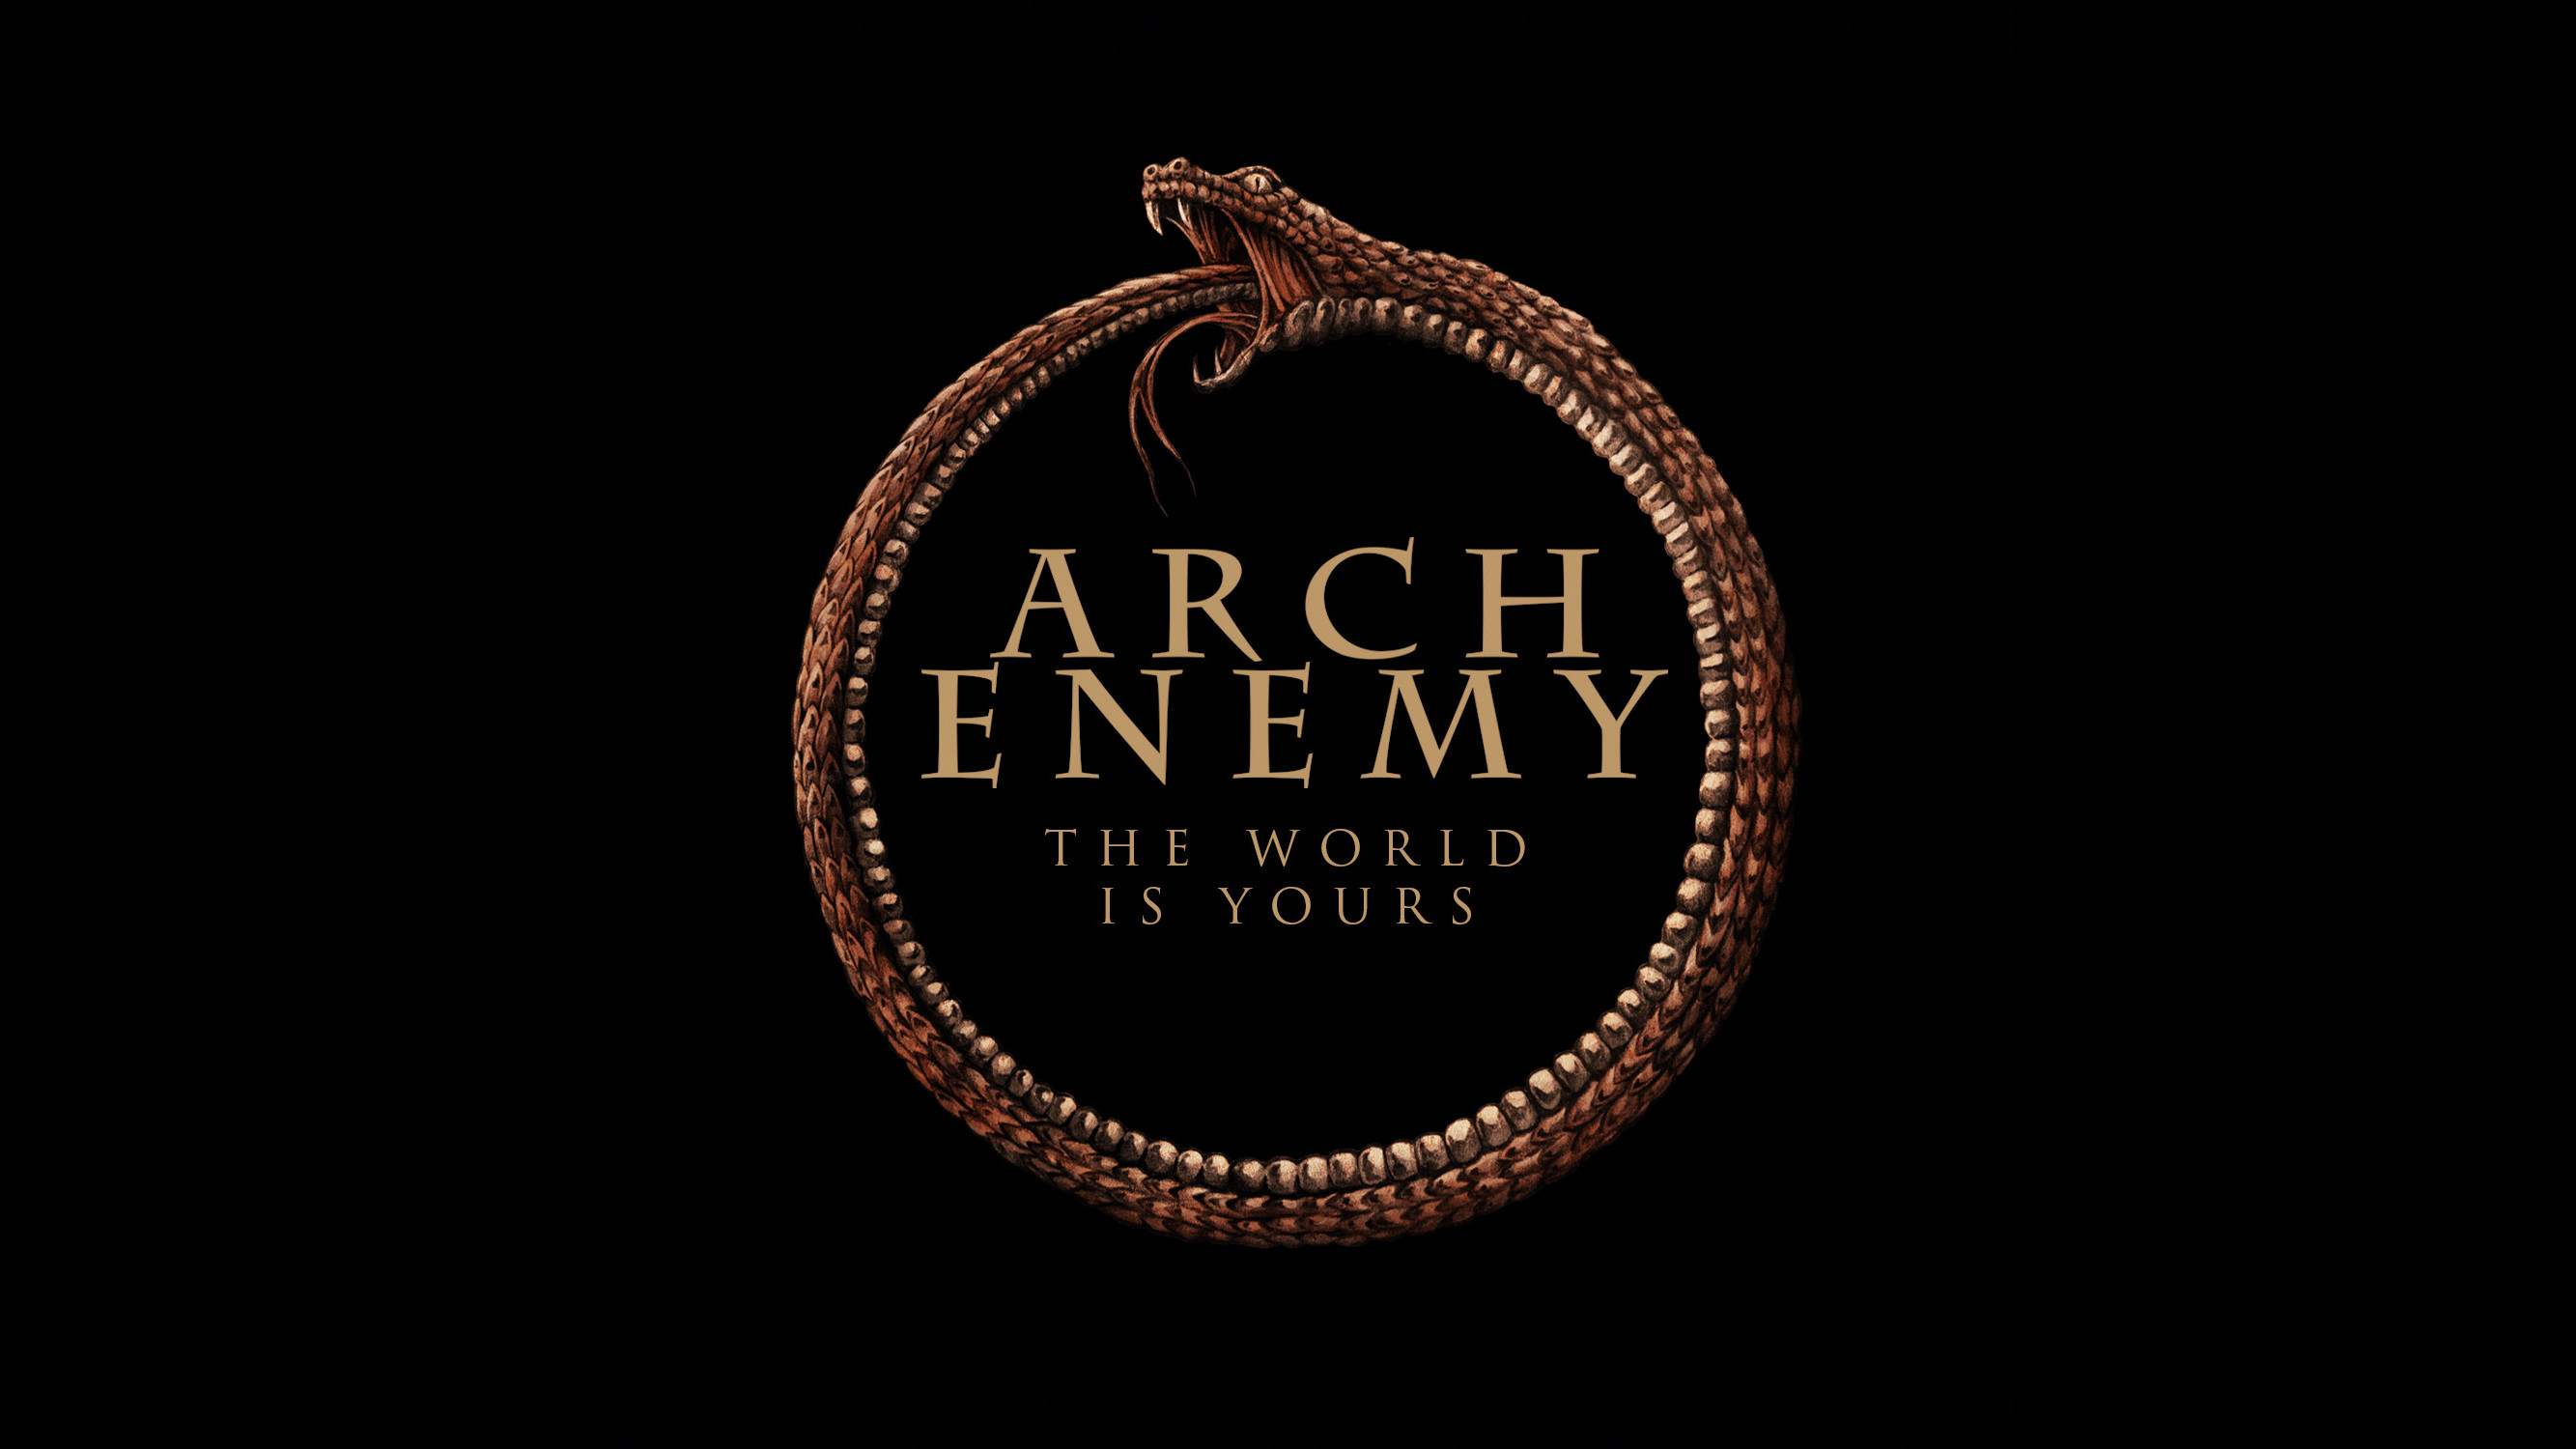 2667x1500 ... ARCH ENEMY - The World Is Yours [WALLPAPER] by disturbedkorea